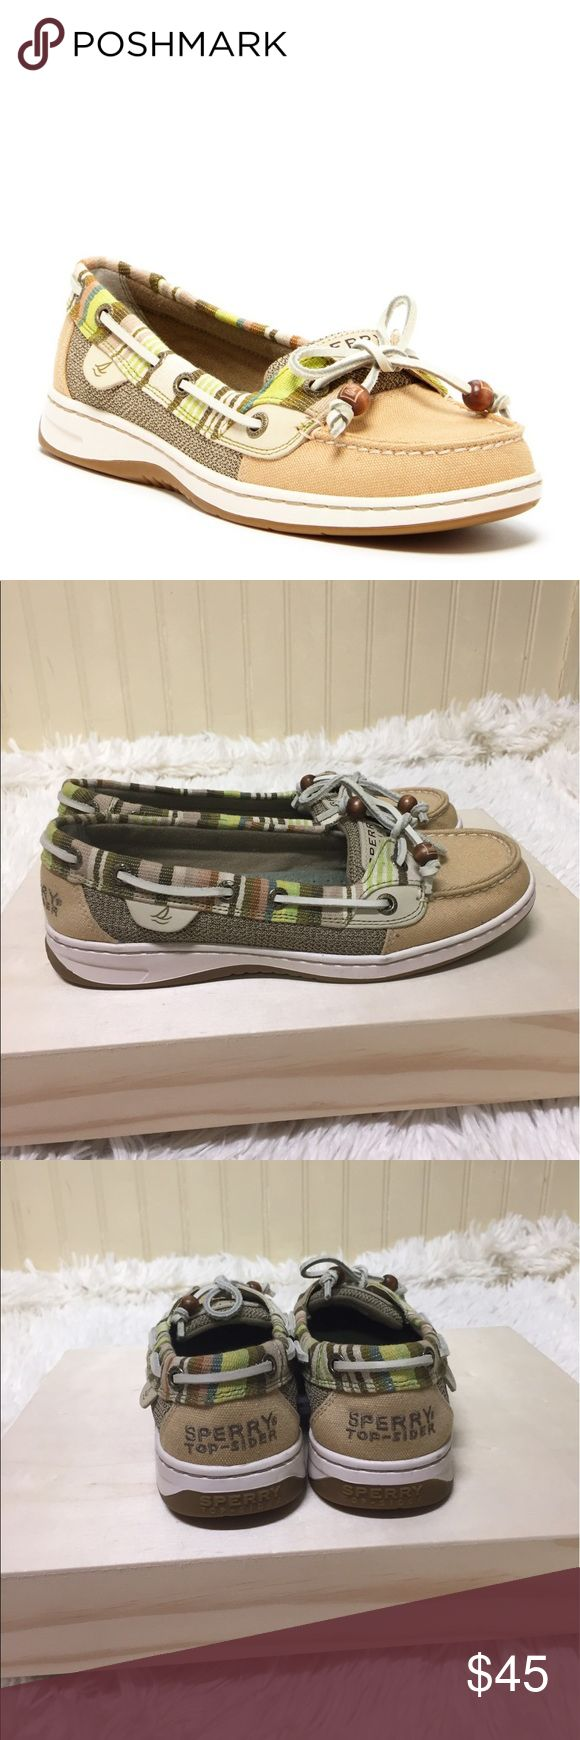 Sperry Top Sider Angelfish Sand Serape Size 6.5 Sperry Top Sider Angelfish Sand Serape Size 6.5 excellent condition Sperry Top-Sider Shoes